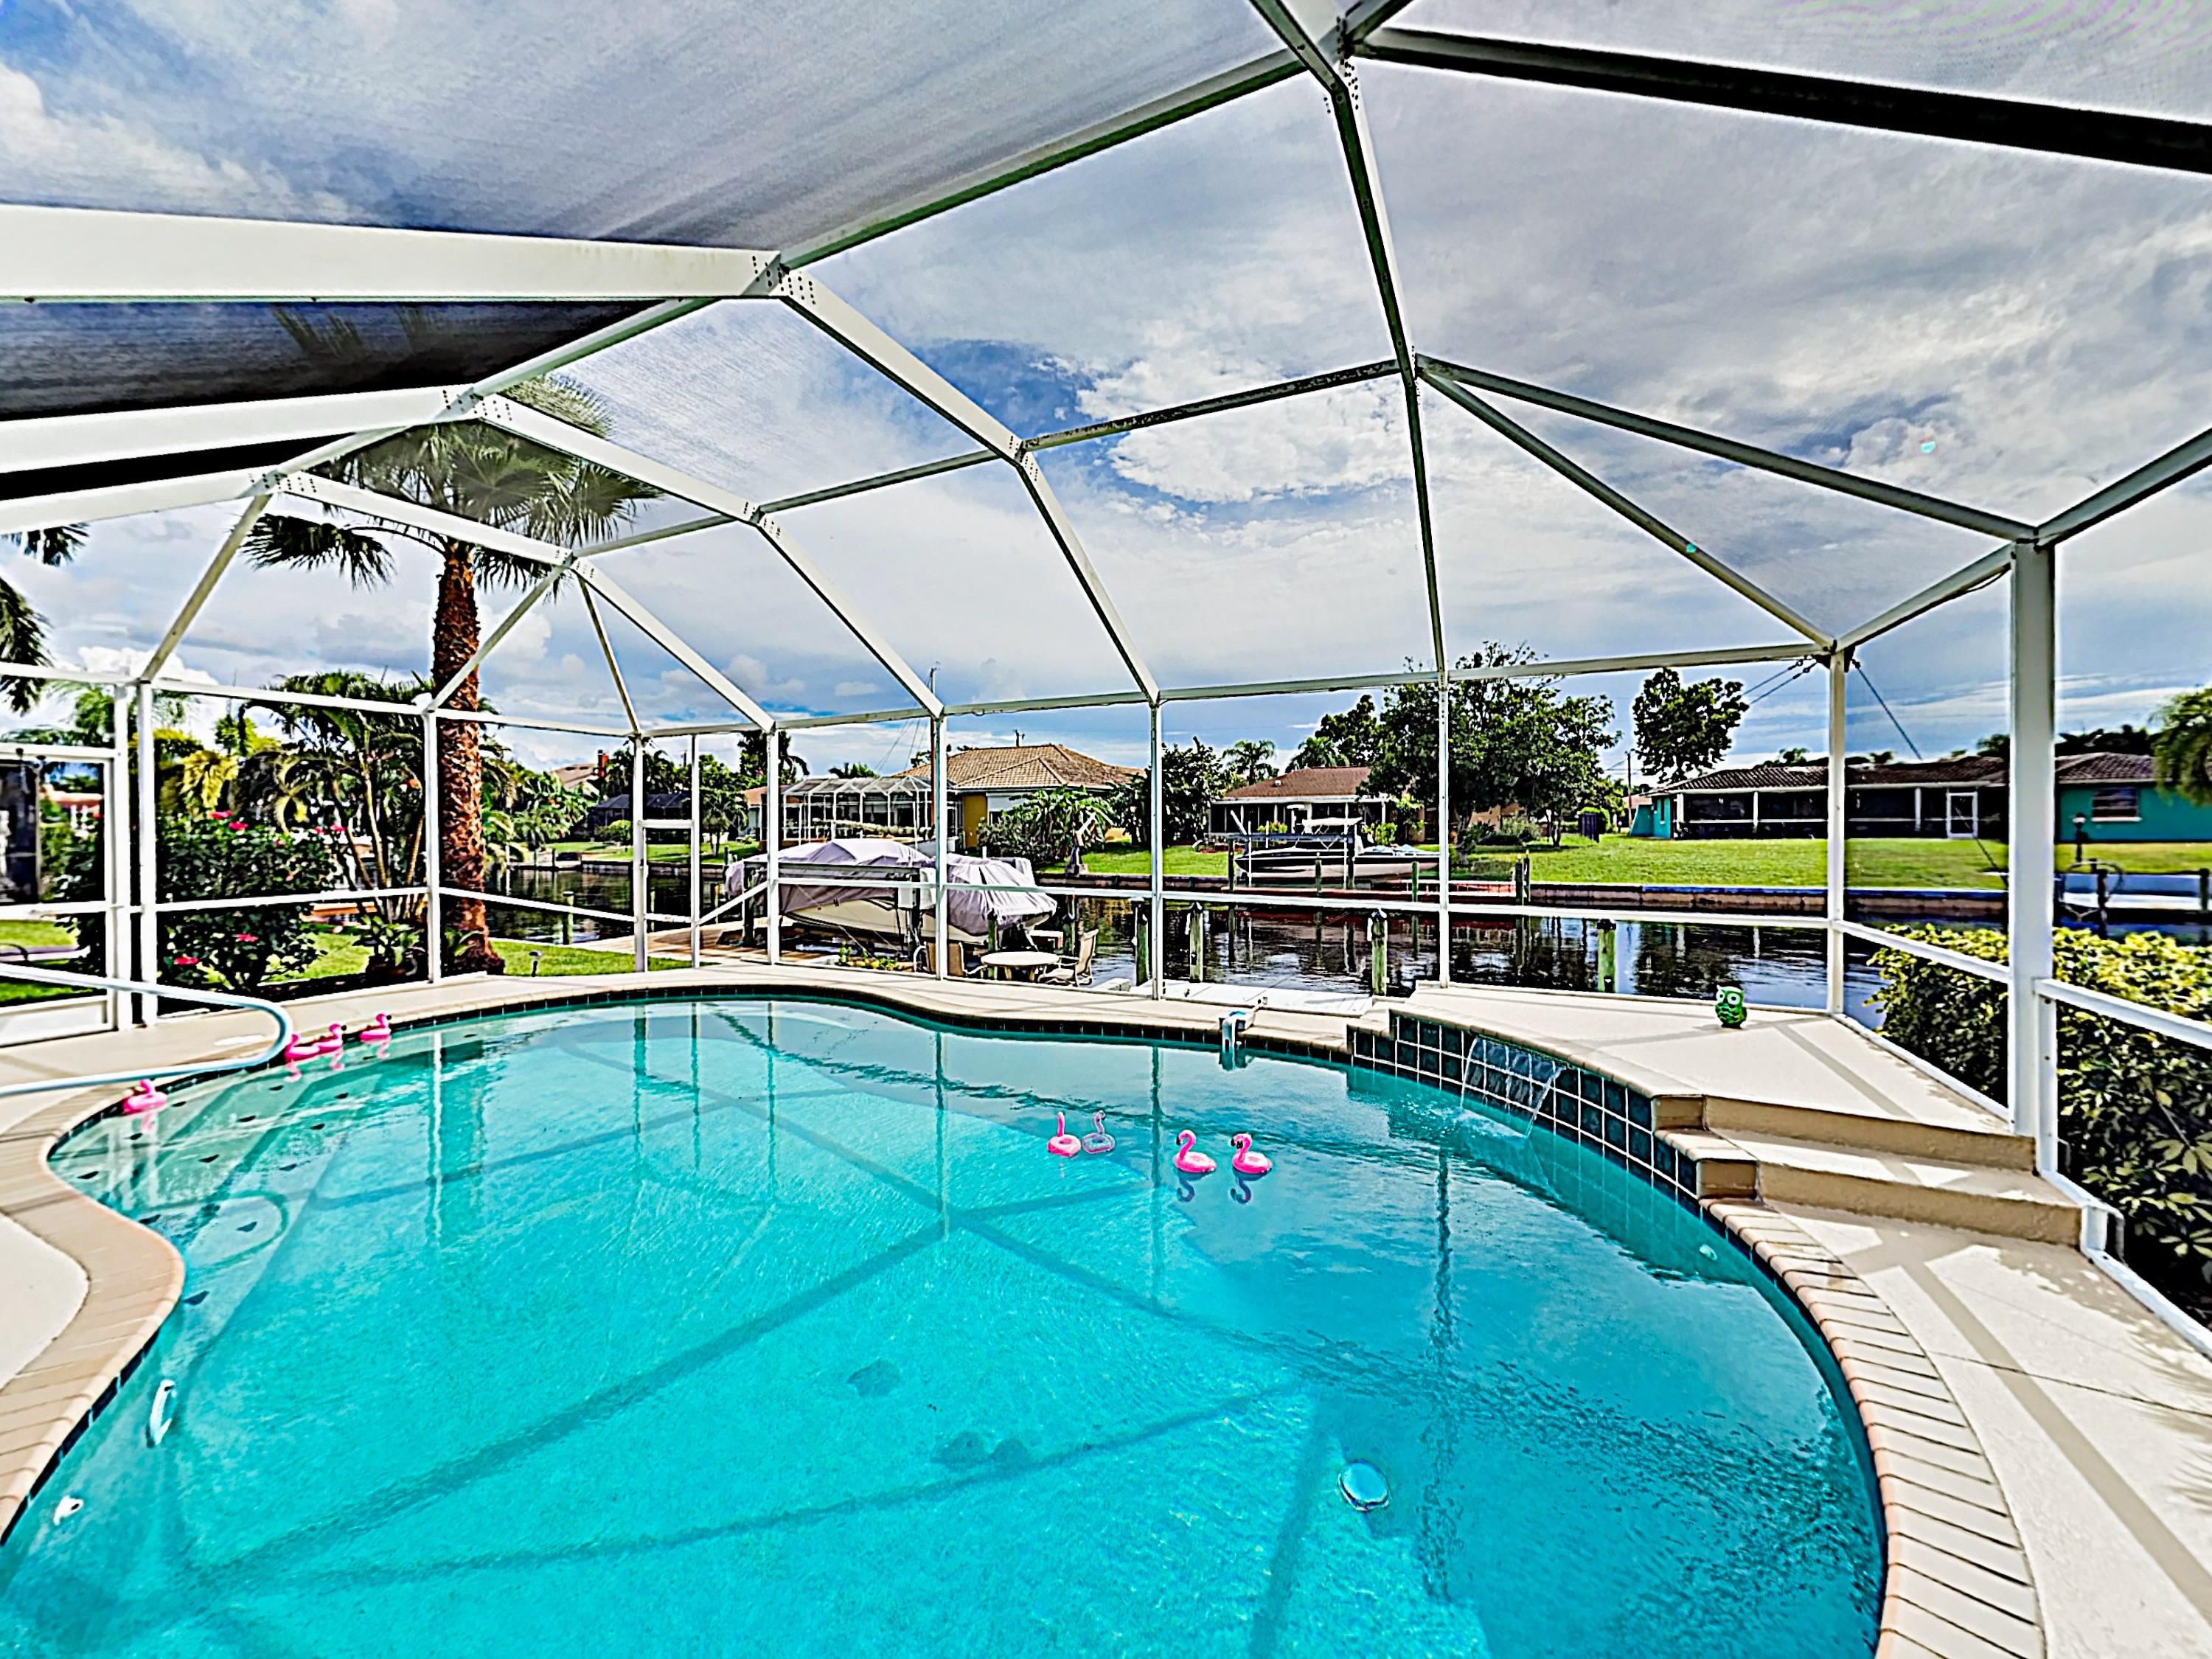 The screened heated pool can be enjoyed year-round!